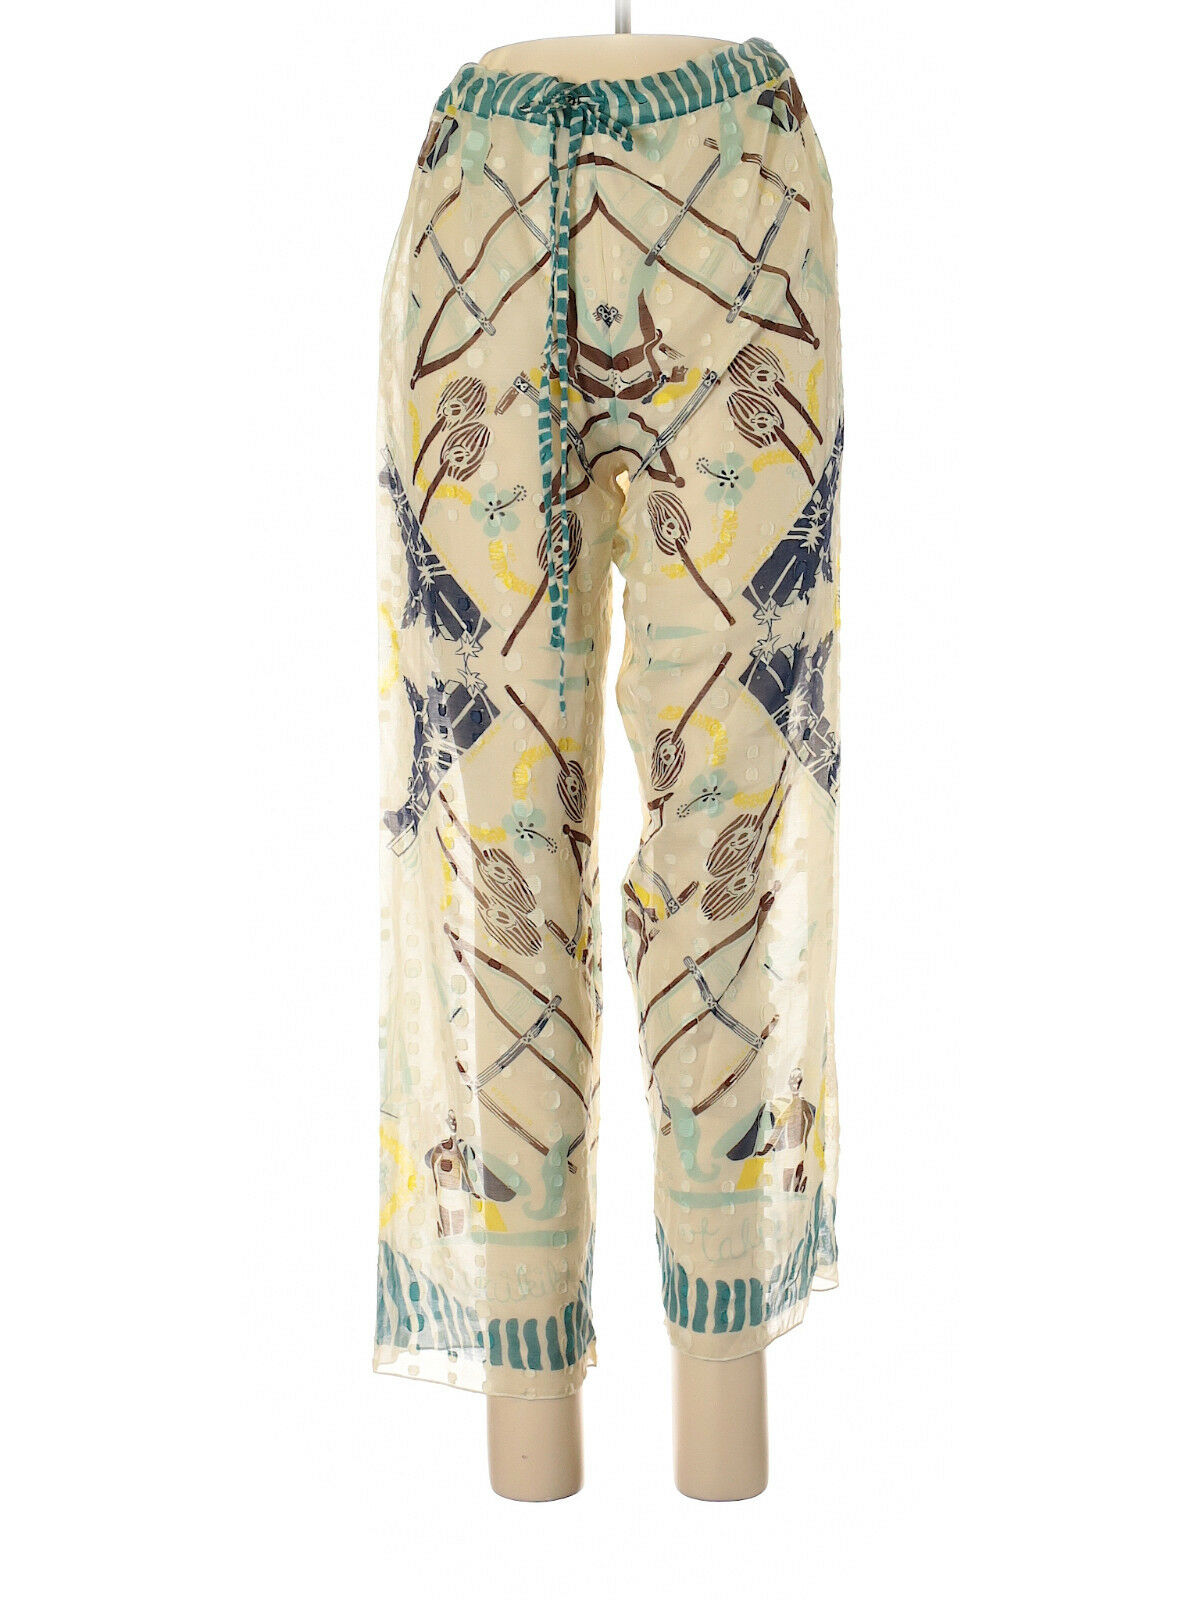 Anna Sui Semi-Sheer Ivory Casual Pants with Drawstring, Size Small, NWT